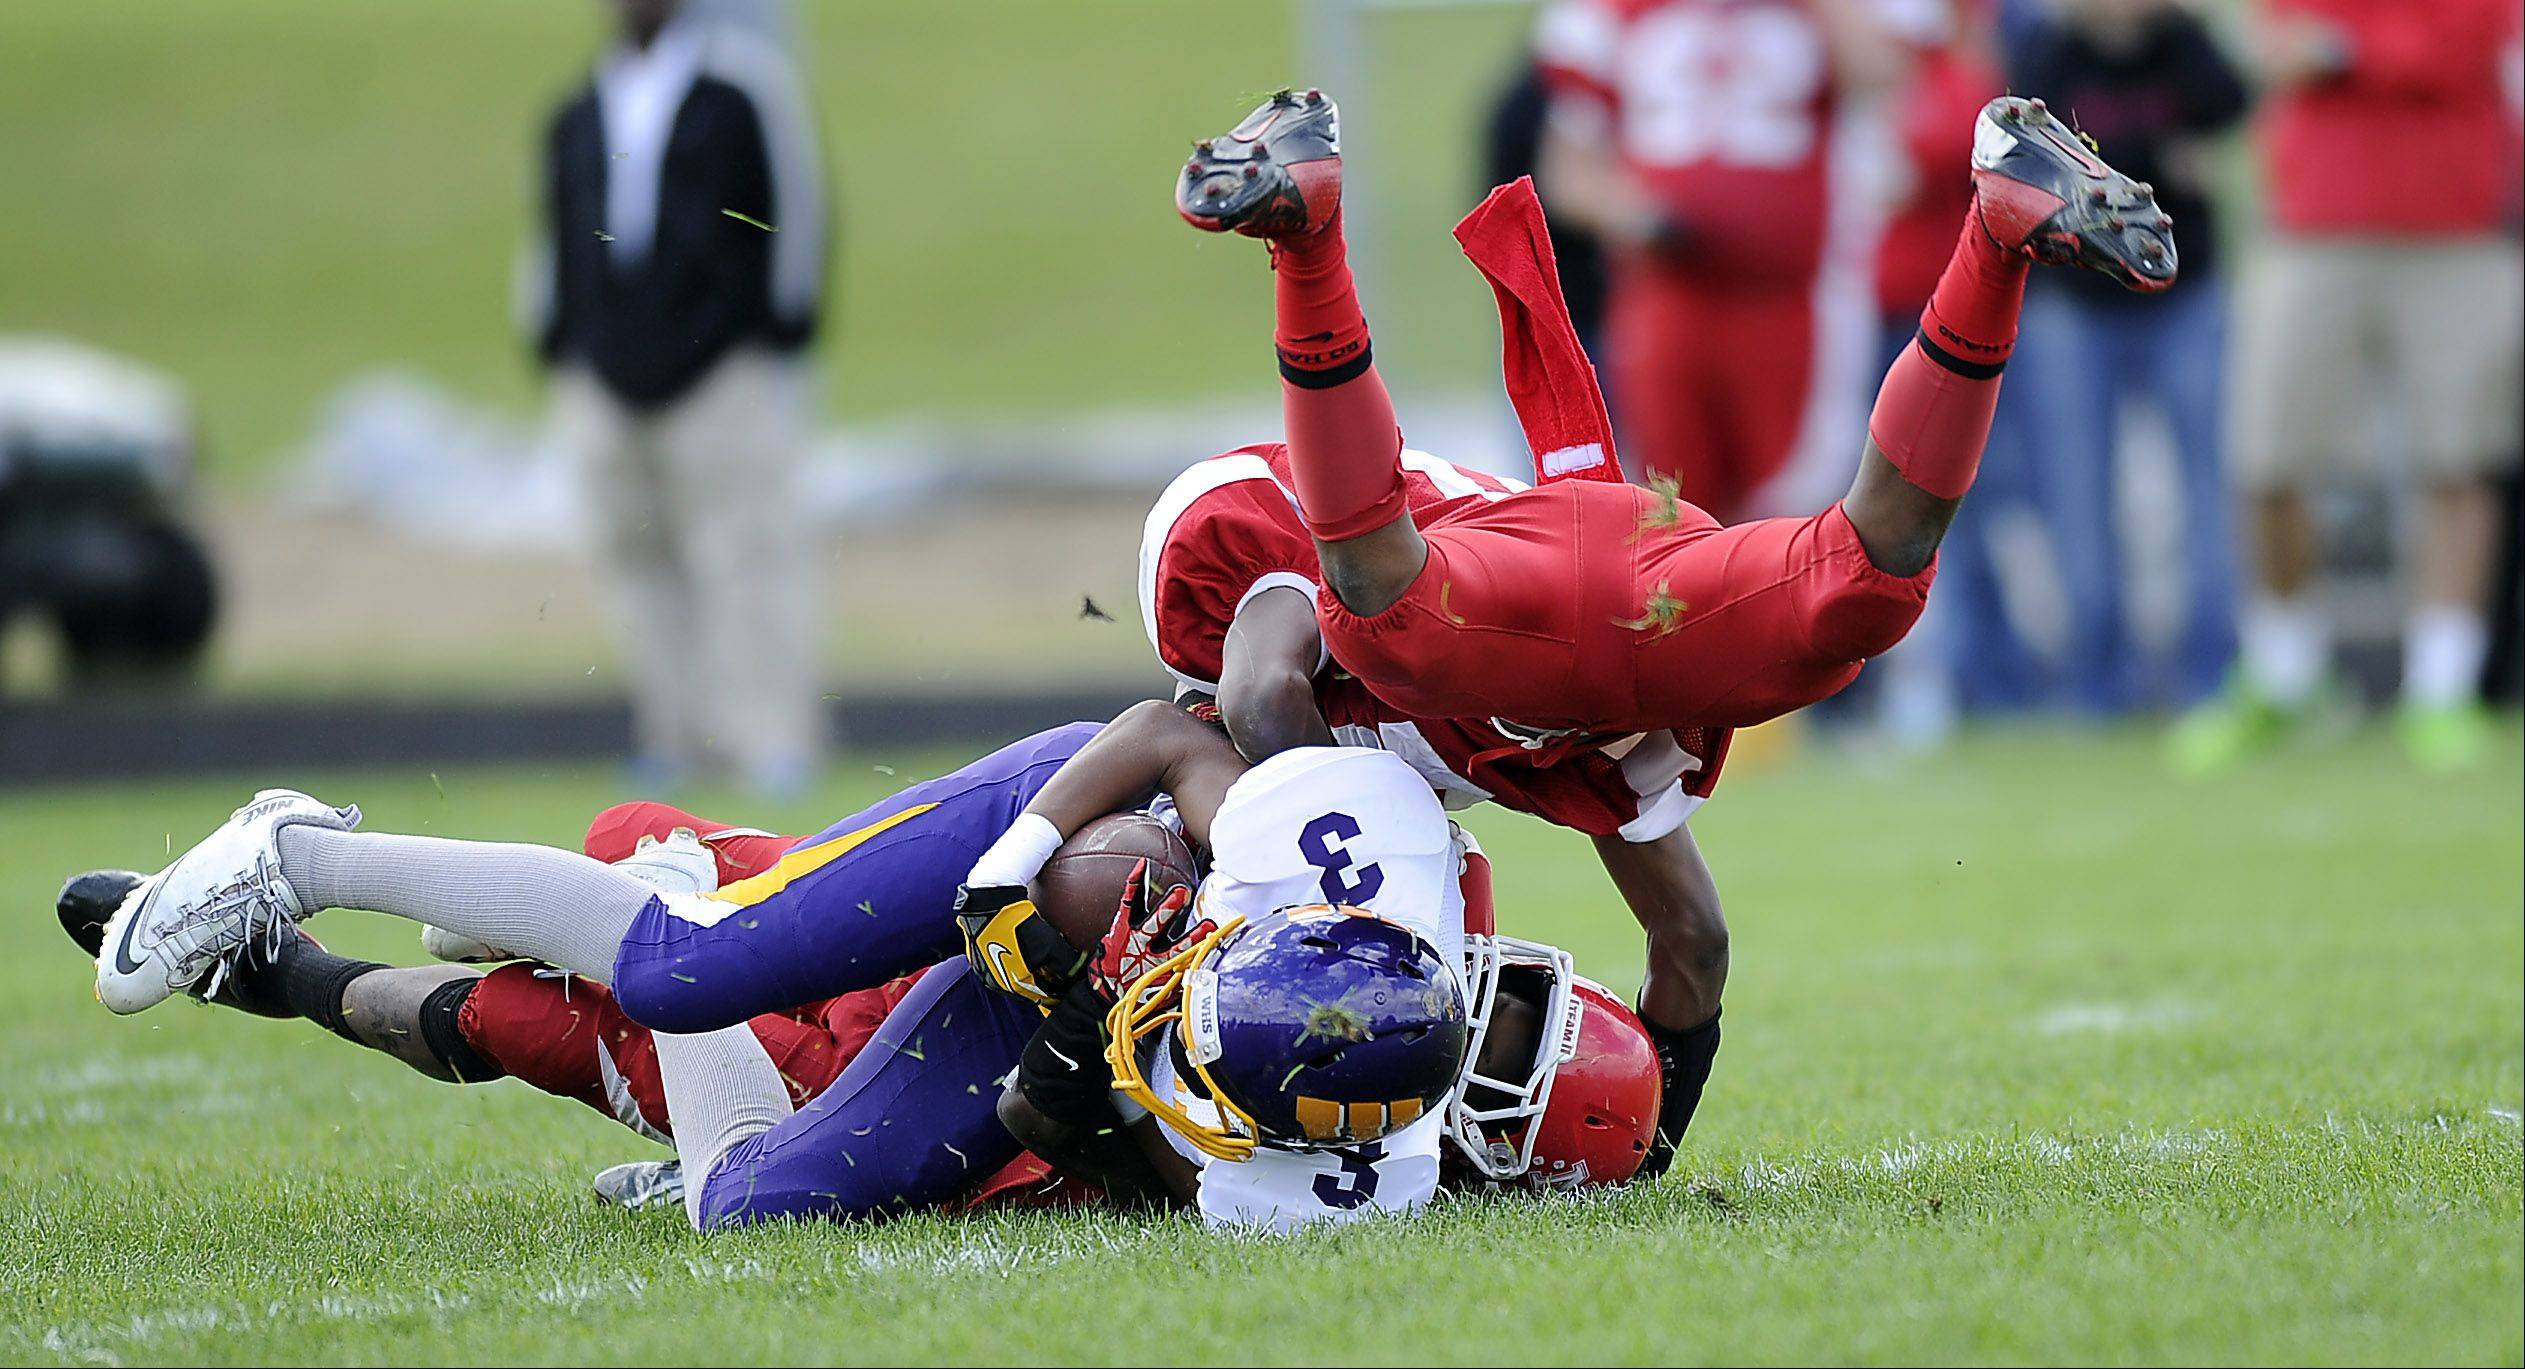 Wauconda�s Josh Anderson is tackled by Tazari Bryant for short yardage in the first half of varsity football at North Chicago High School on Saturday.